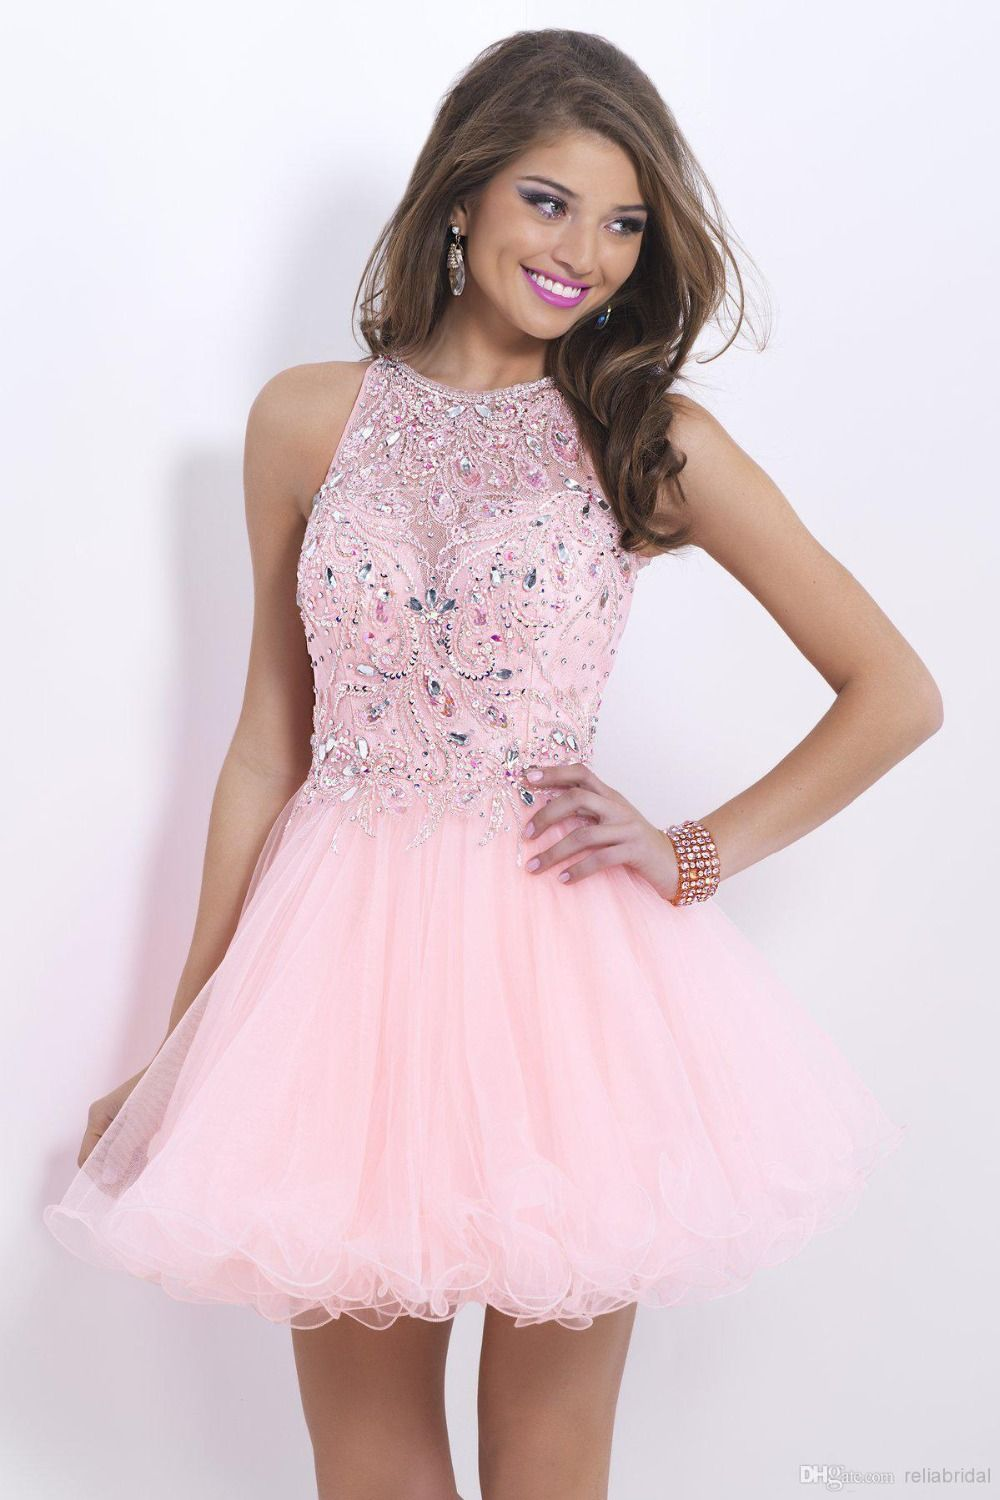 Graduation Dresses for Girls | Dress images